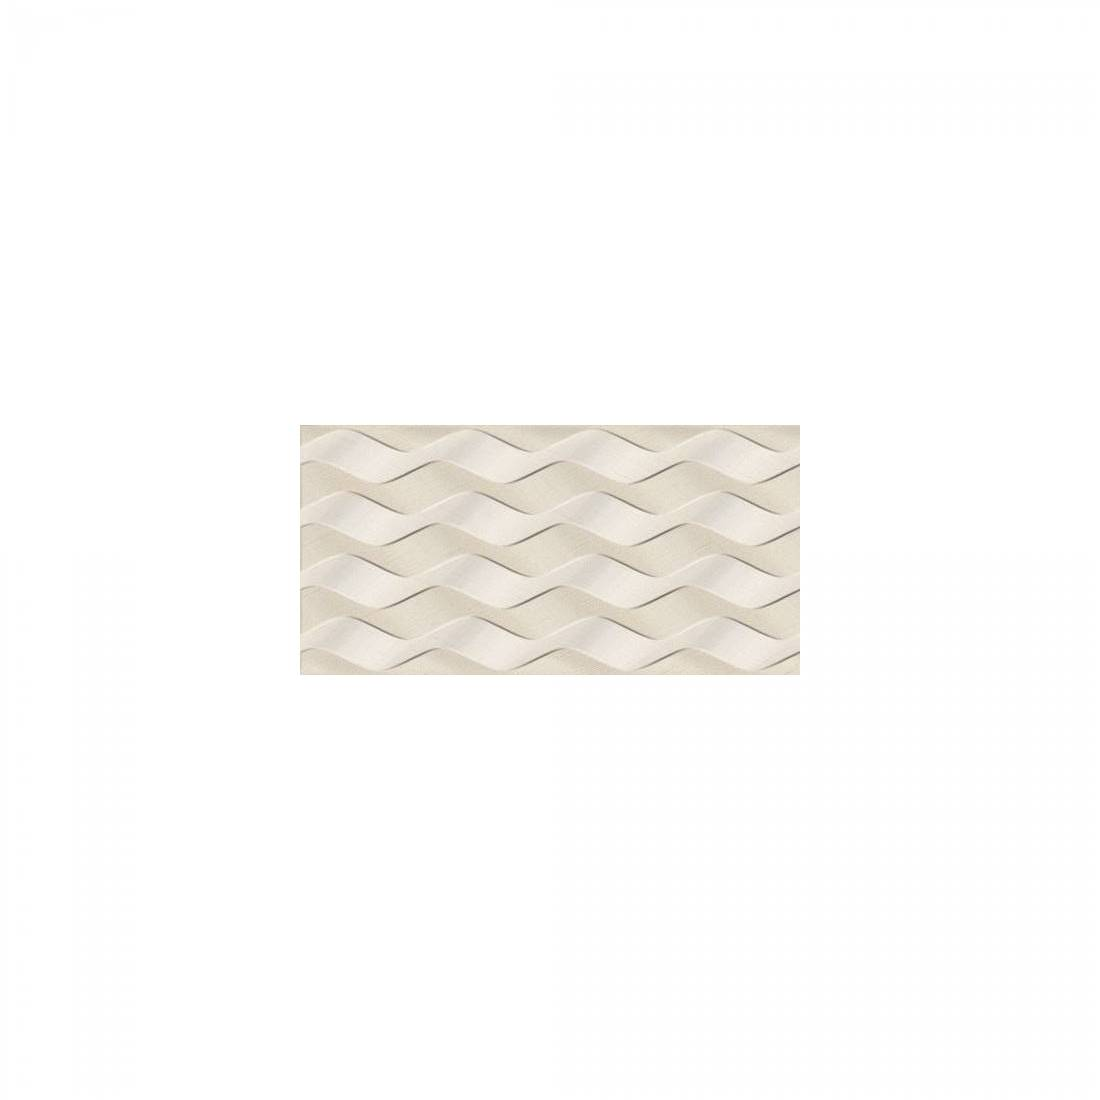 Neutra Braid 30x60 Cream Matt 1